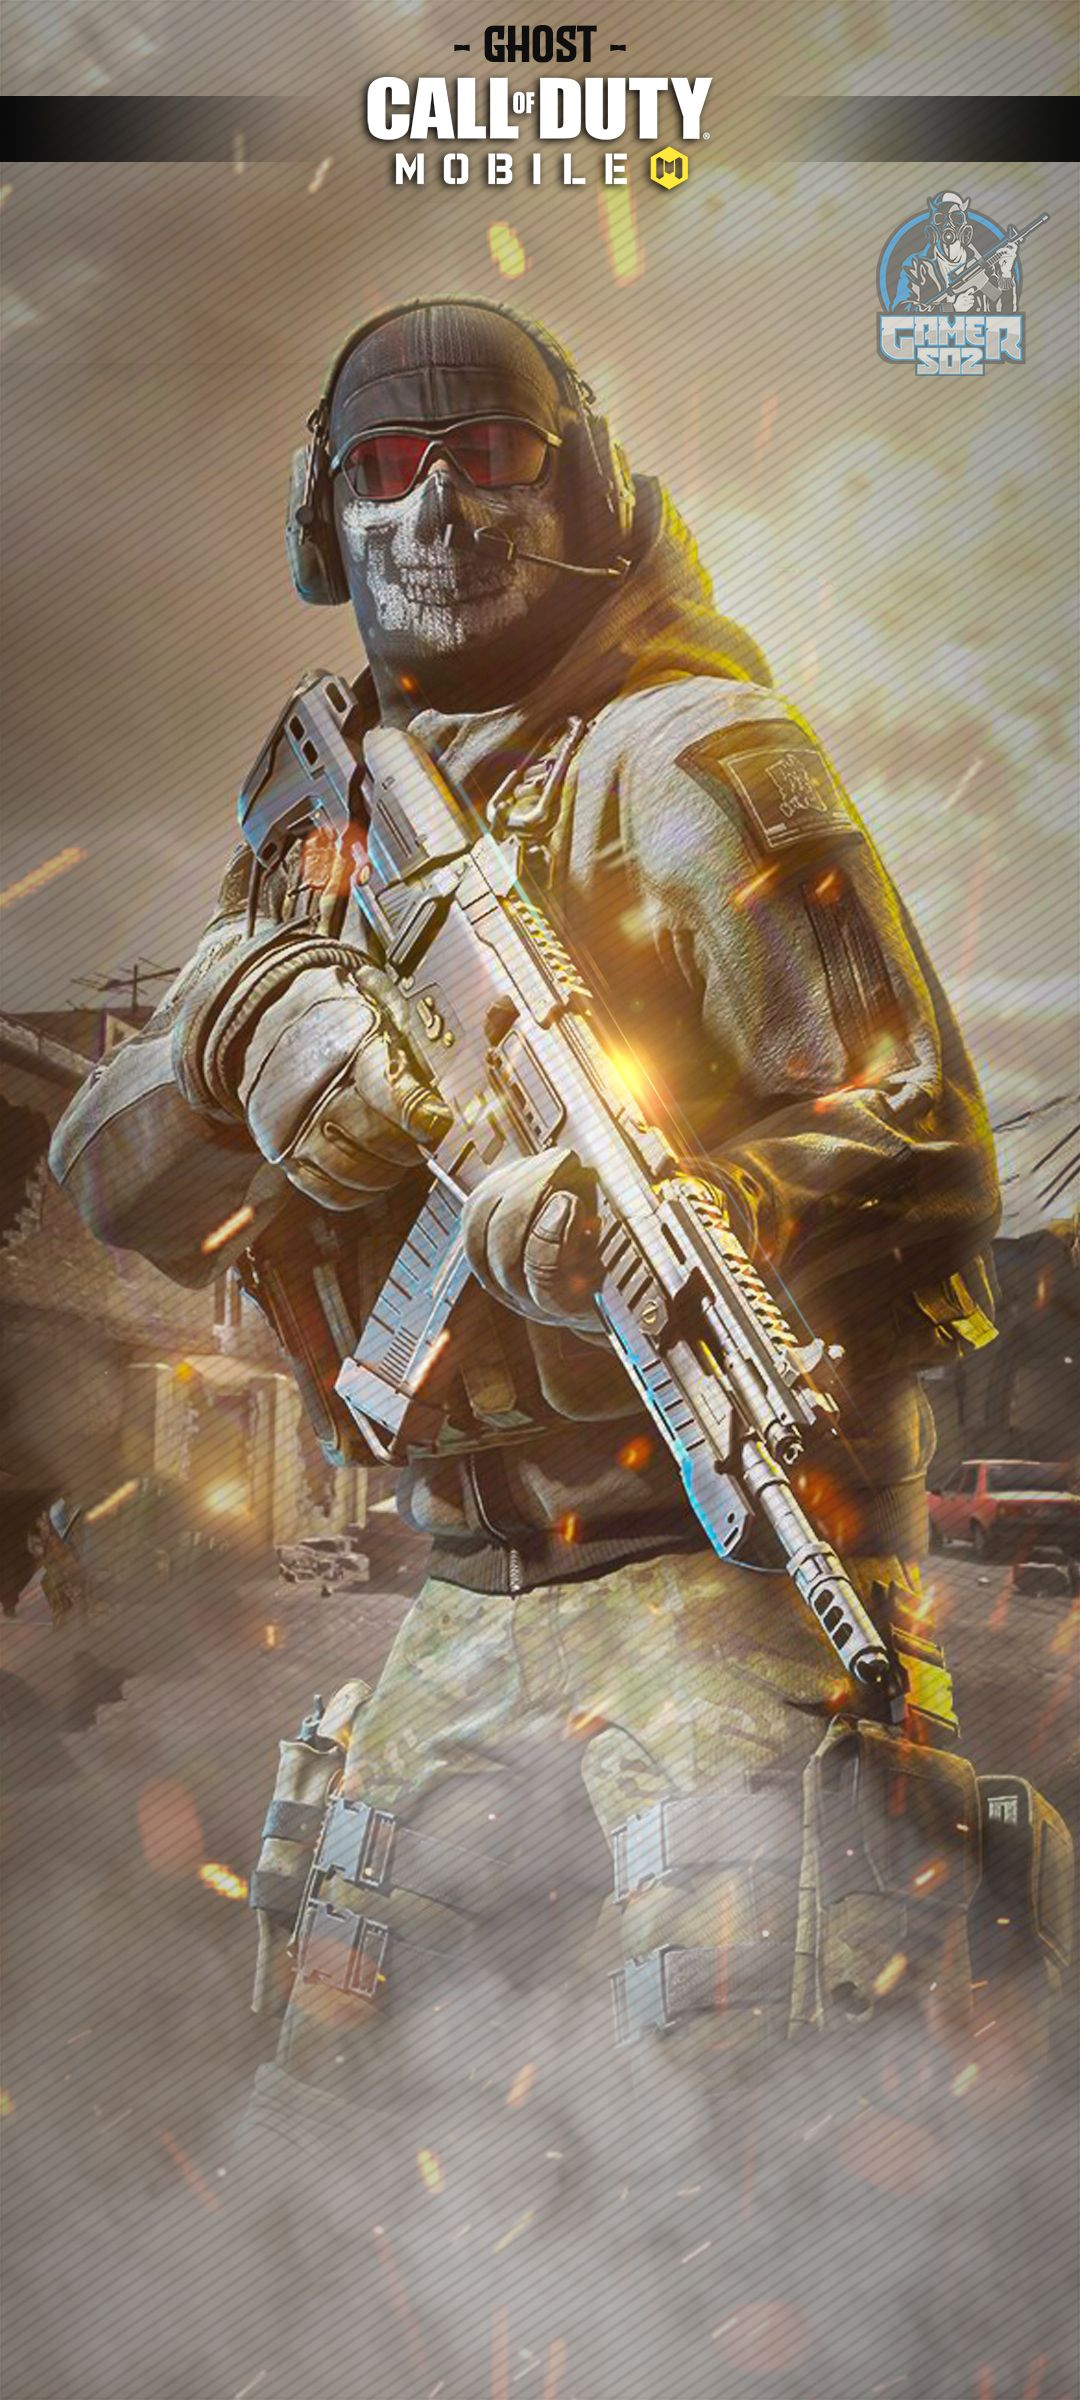 Call Of Duty Mobile Phone Wallpapers Hd 4k Collection In 2021 Call Of Duty Mobile Wallpapers Call Of Duty Call Of Duty Mobile Wallpapers Hd